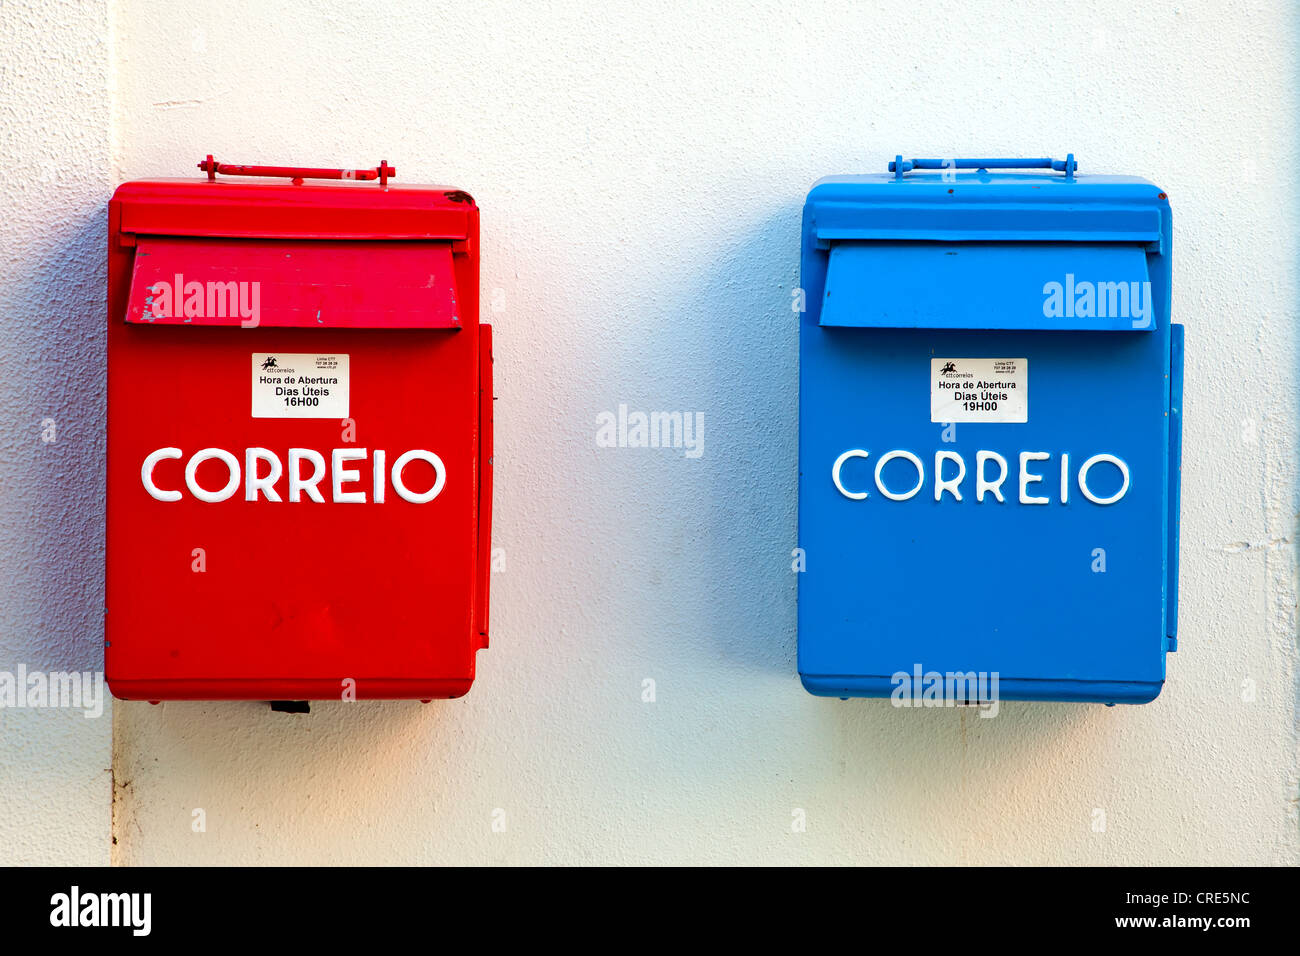 Mailboxes of the Portuguese postal service, Correio, in red and blue for different collection times, in the district - Stock Image